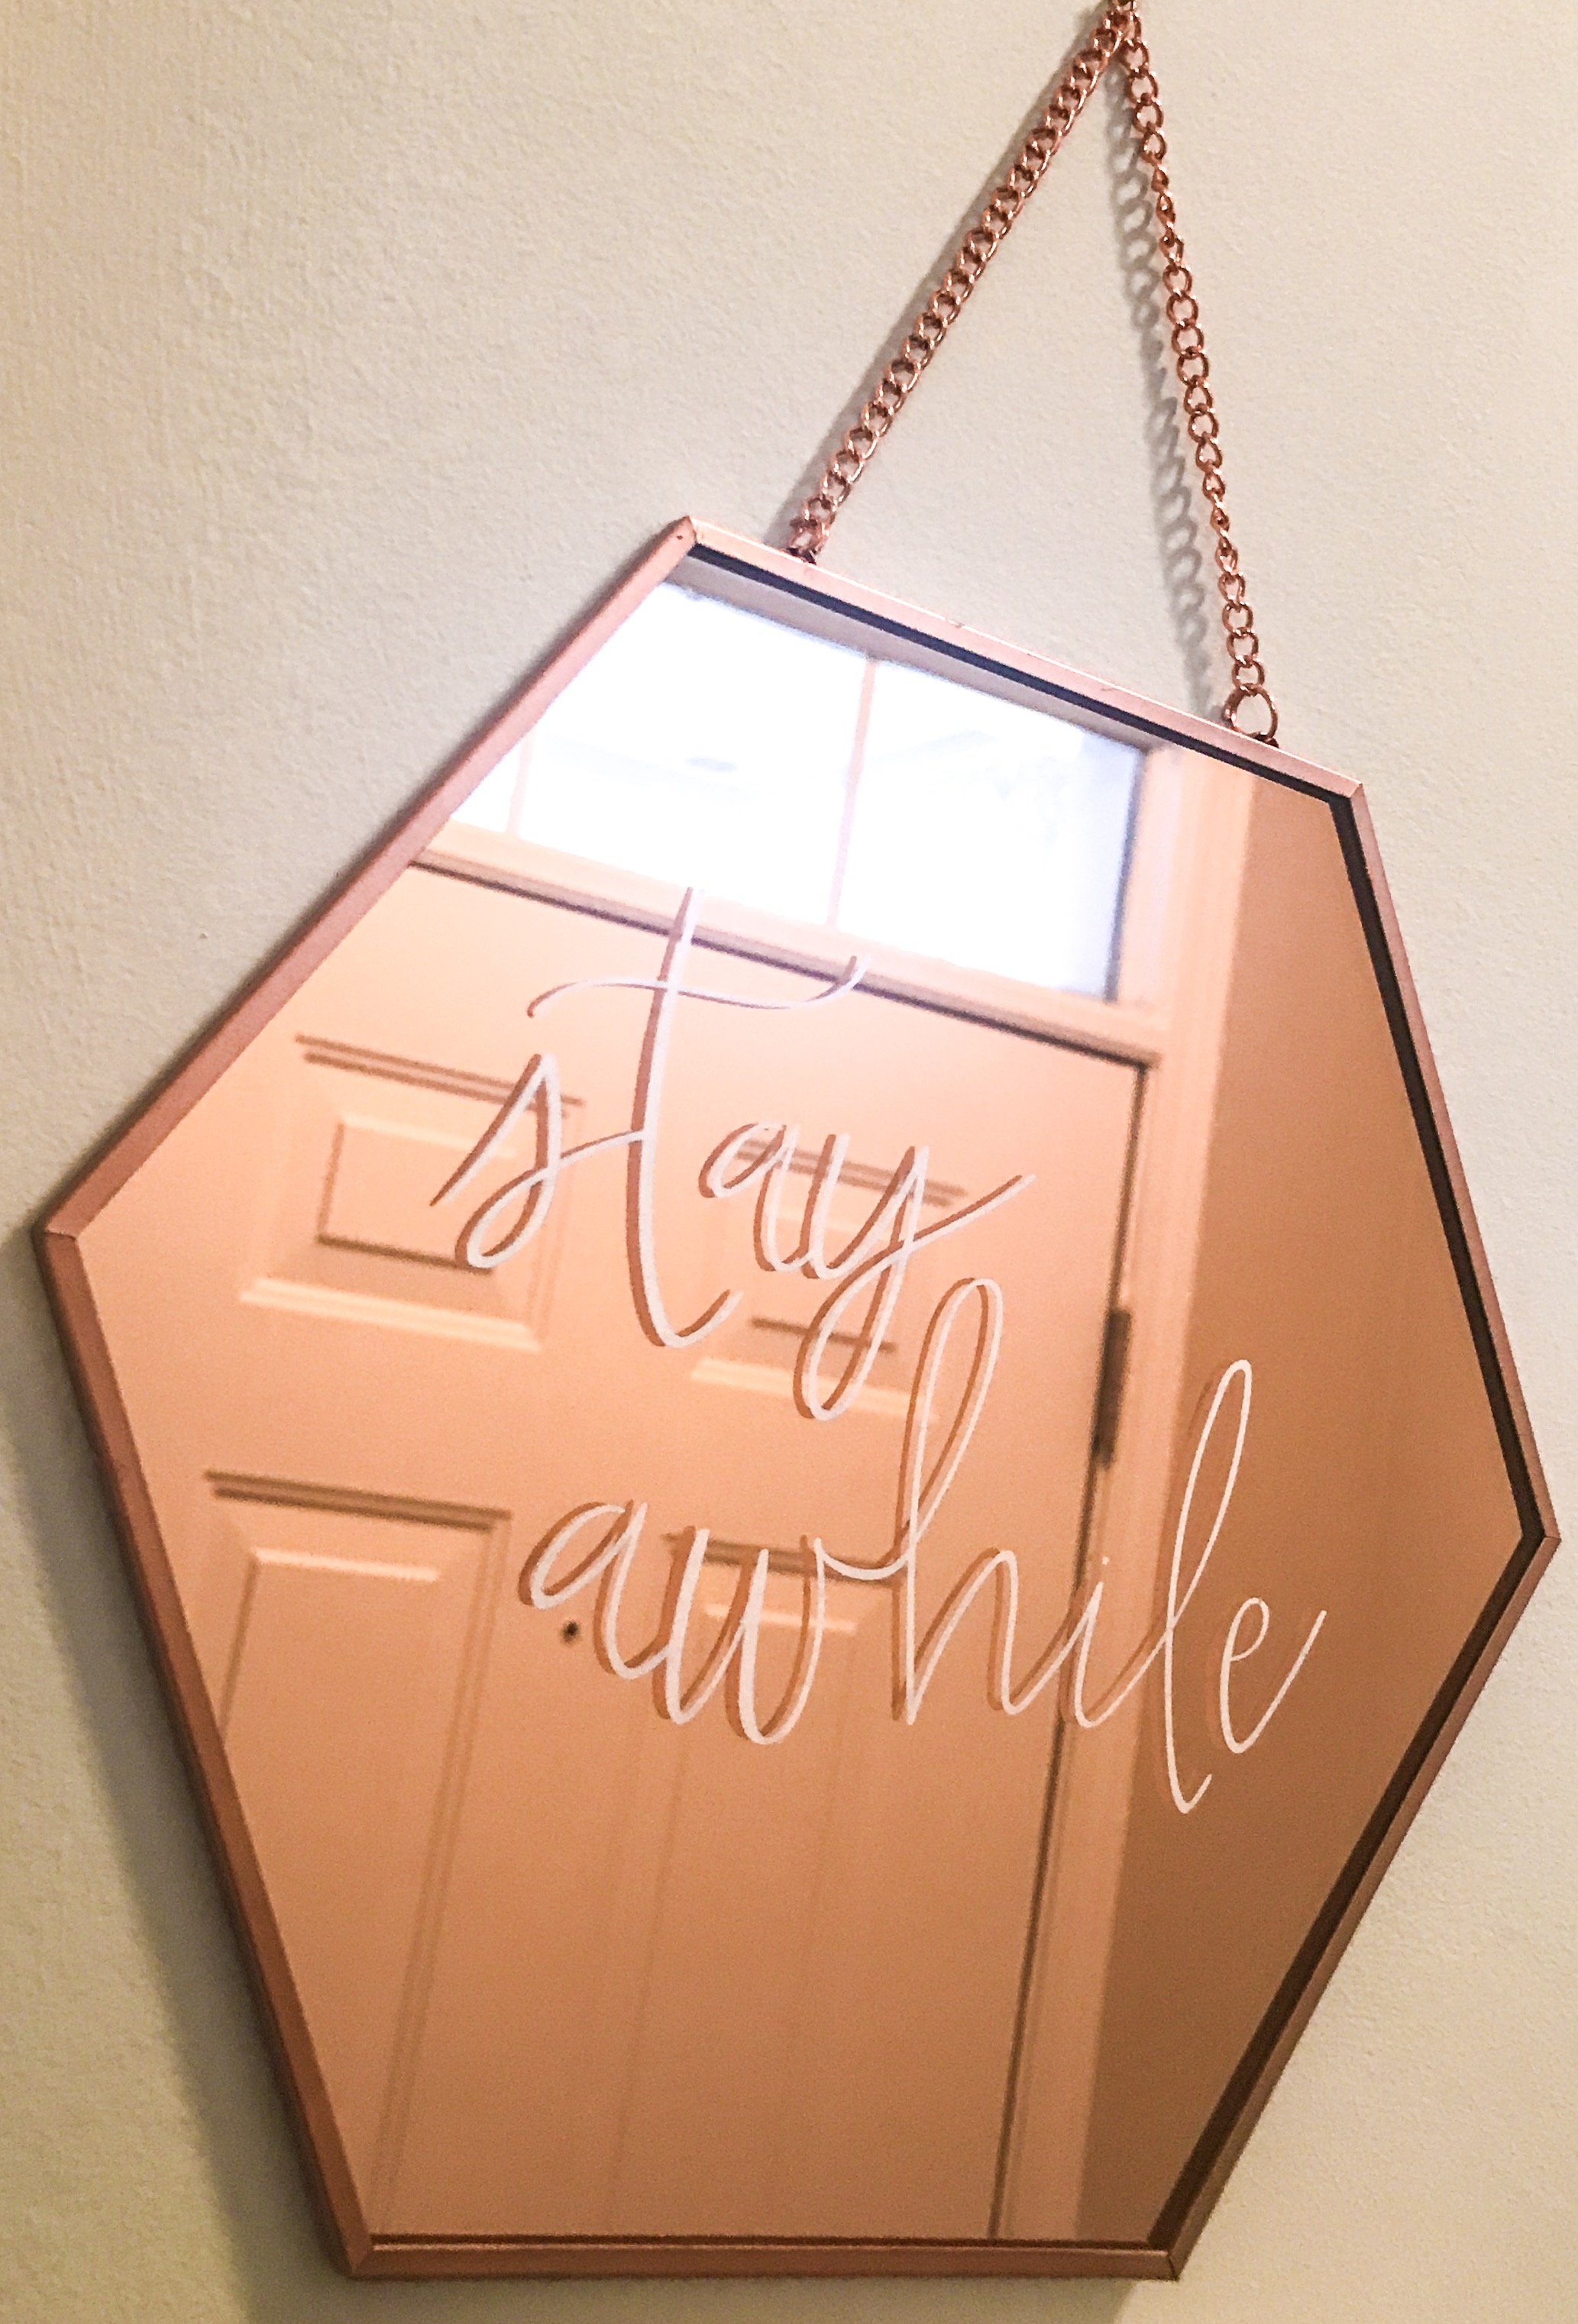 Picked this sweet rose gold mirror wall decoration up from the dollar section in Target for only $3! I have it in my entry way and I get compliments on it every time we have guests!